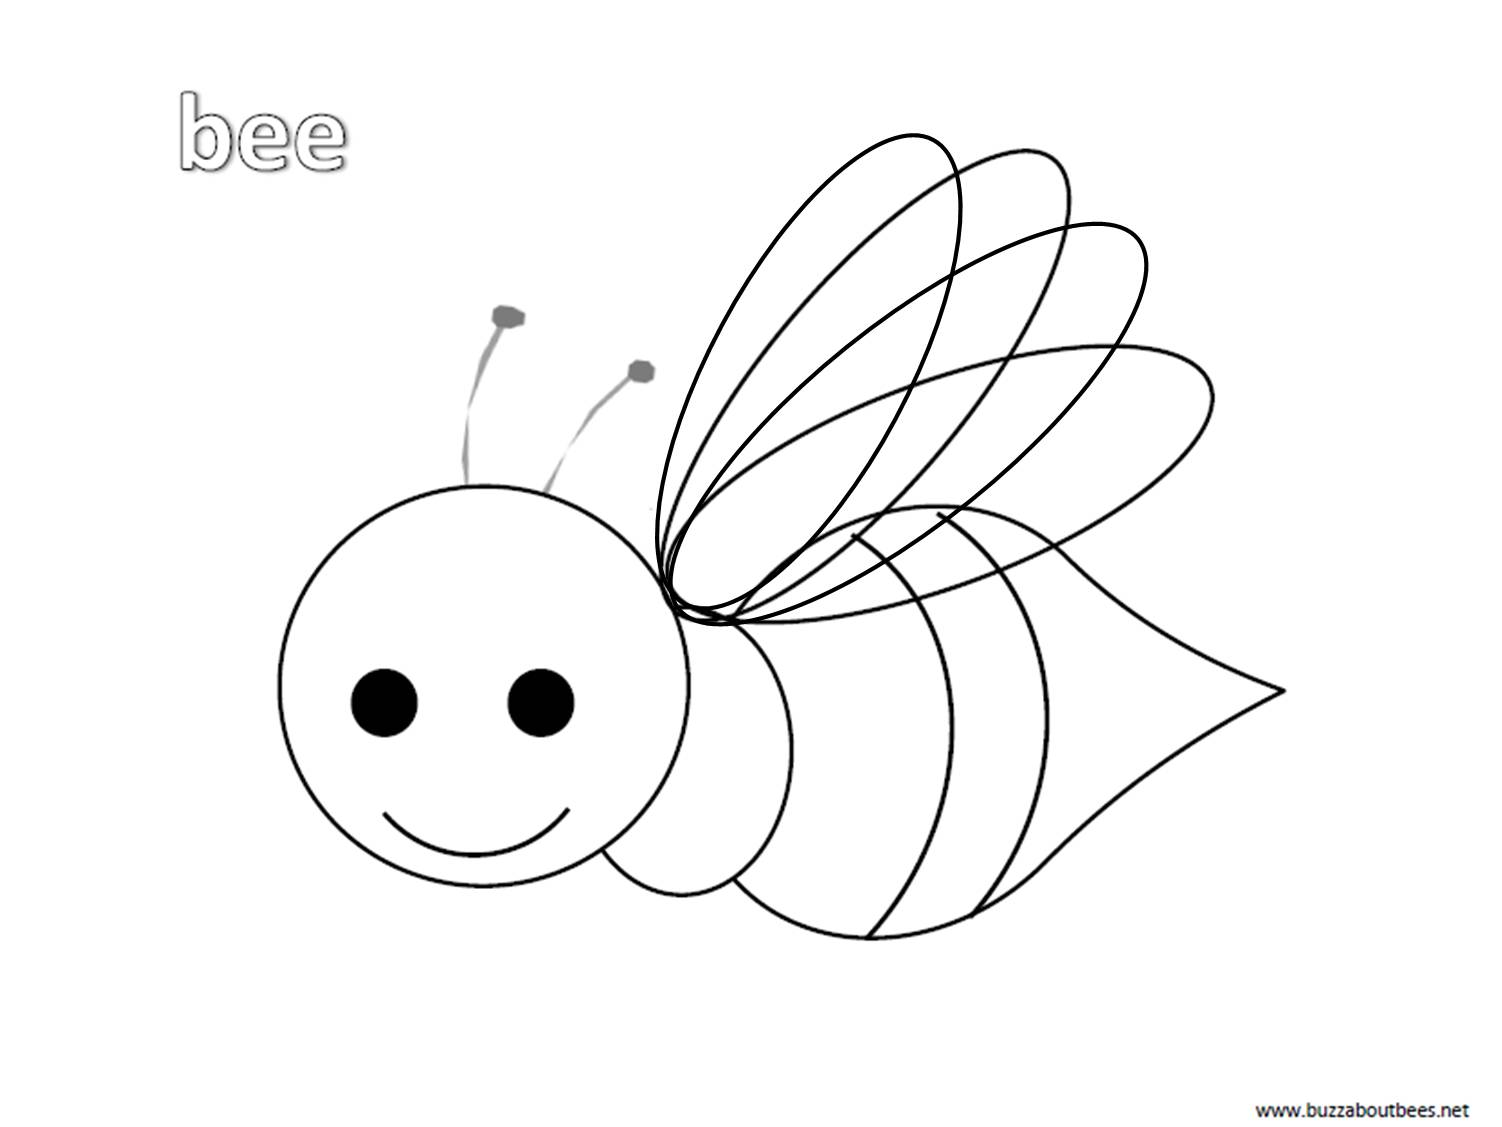 bee coloring pages educational activity sheets and puzzles free to download - Coloring Pages Download Free